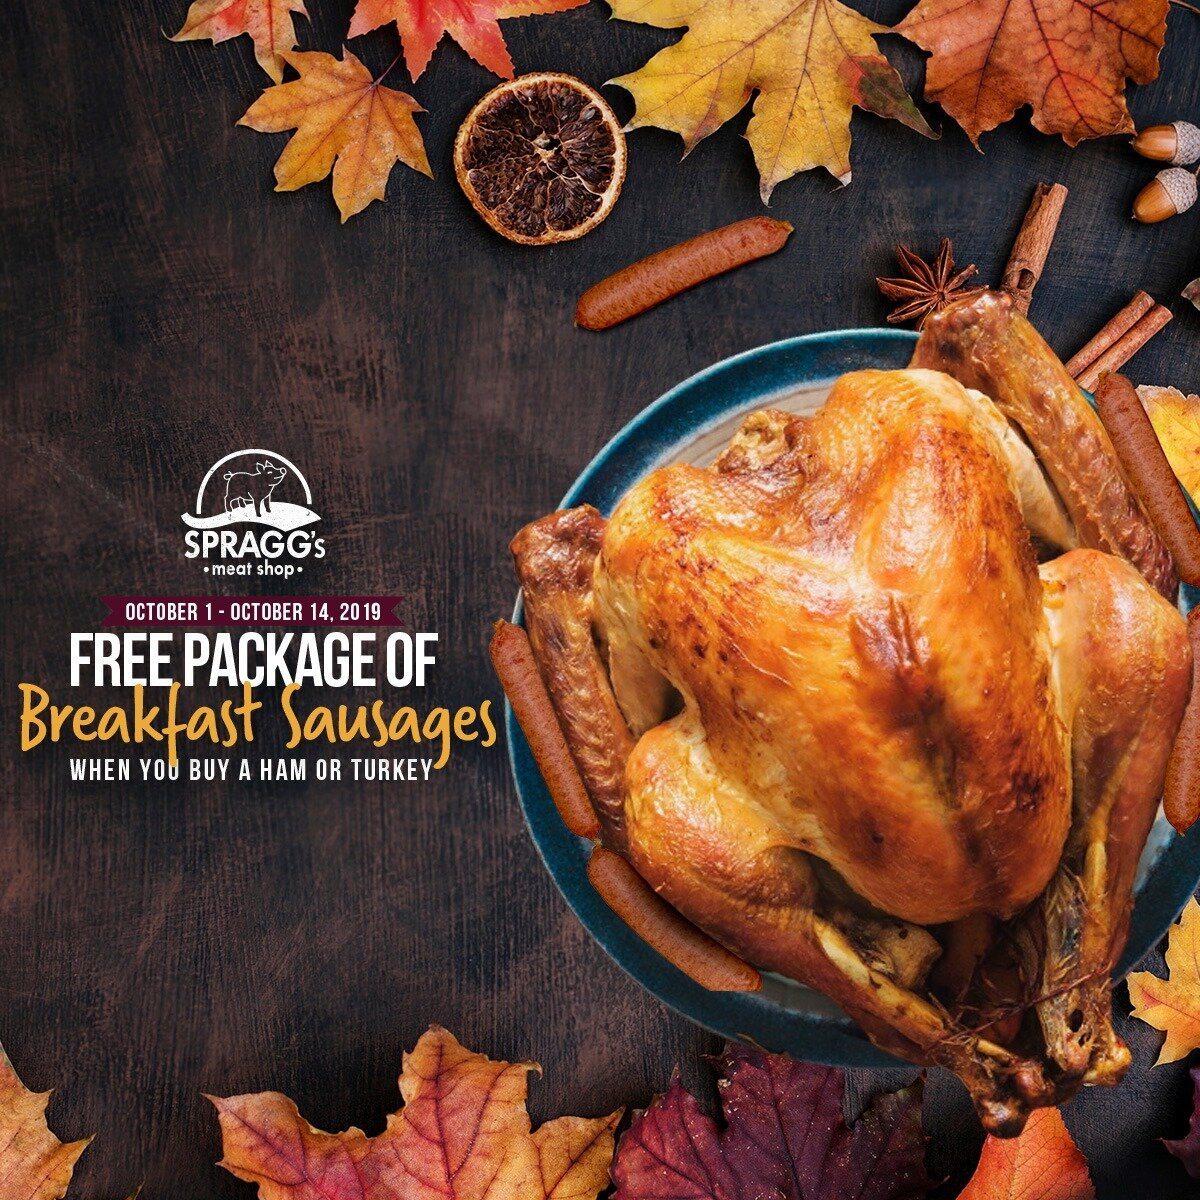 It's Not too late to Take advantage of our thanksgiving promotion! - Kick your festivities off to a great start by making sure you get the star of the show in time!If you purchase a ham or turkey from us between now and Thanksgiving, we'll throw in a FREE package of breakfast sausage to show you our THANKS!